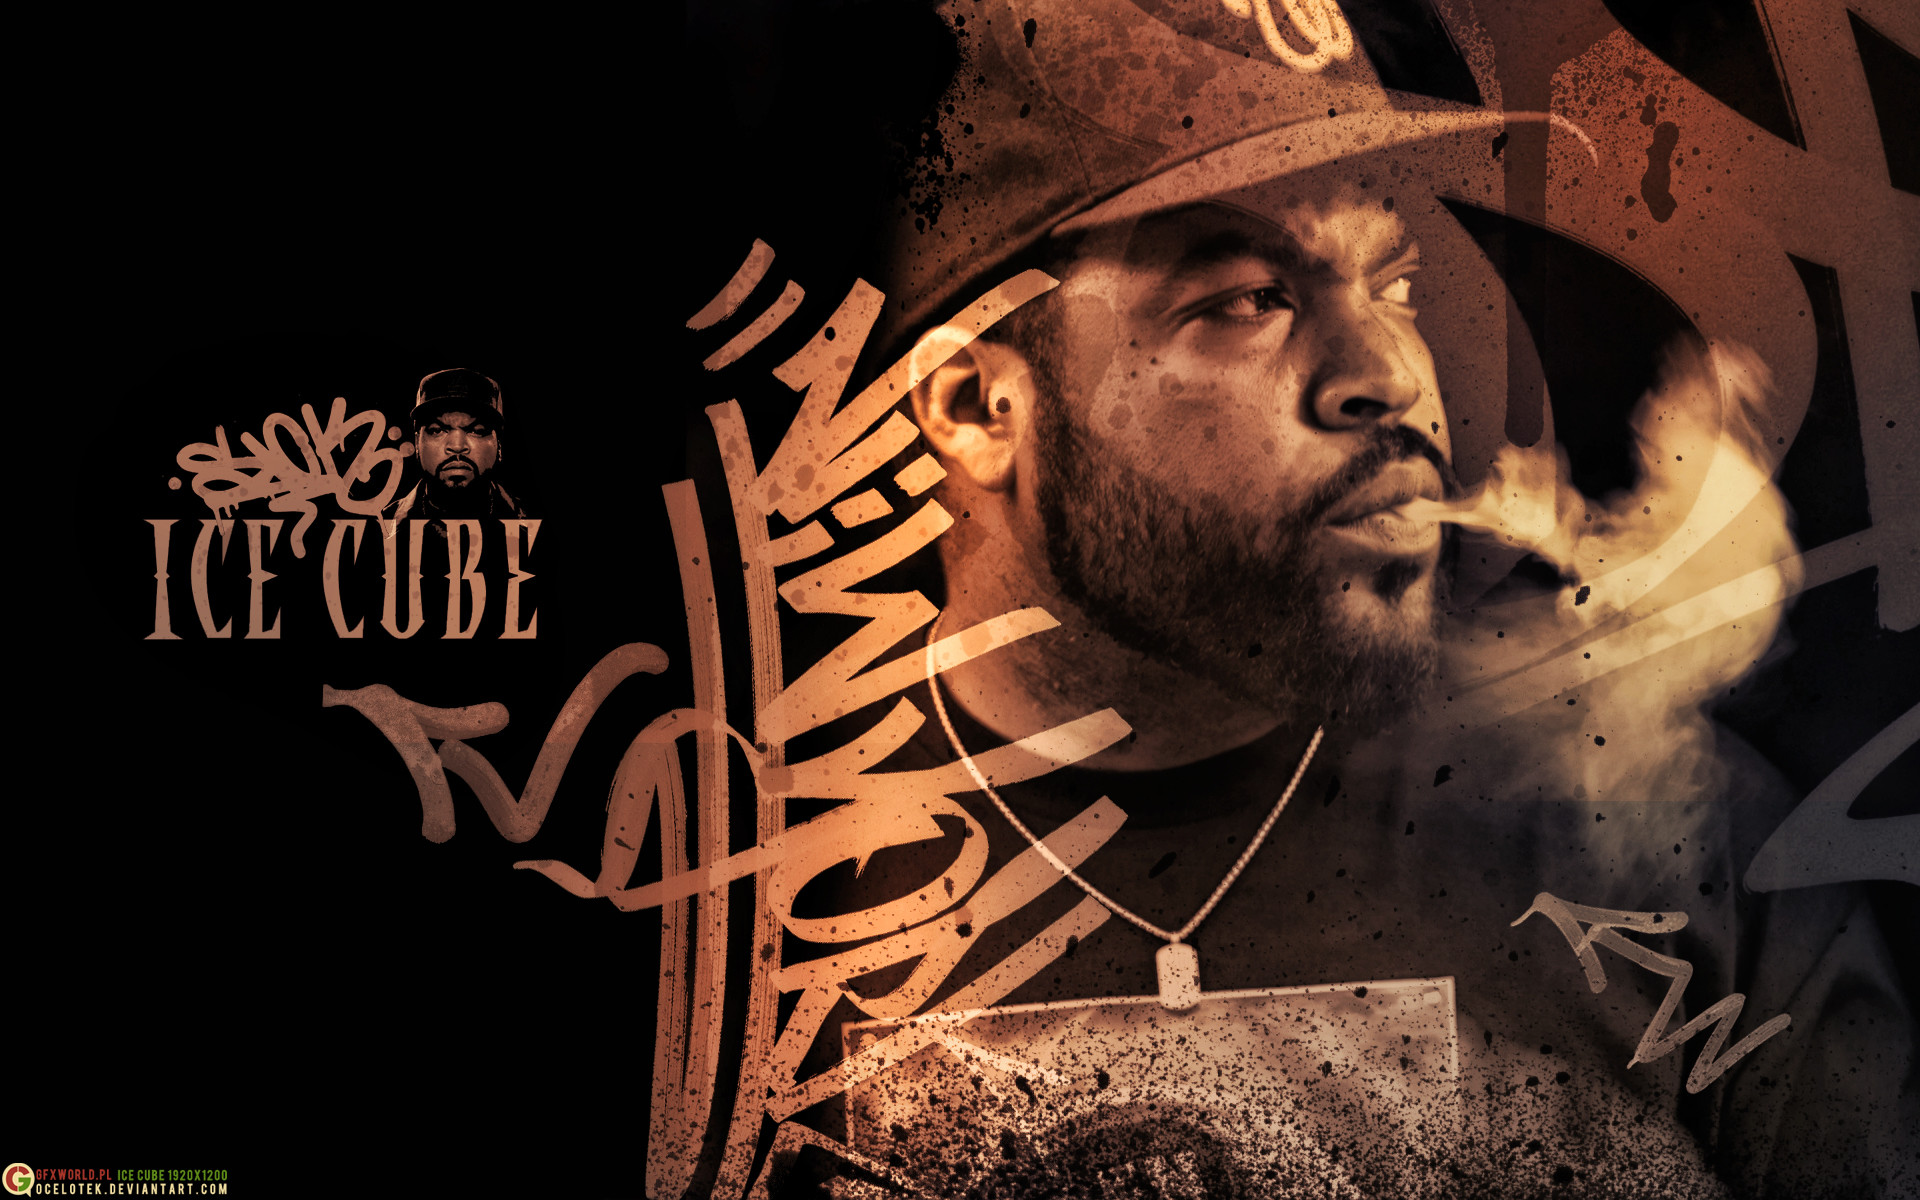 … Ice Cube High Definition Wallpapers …